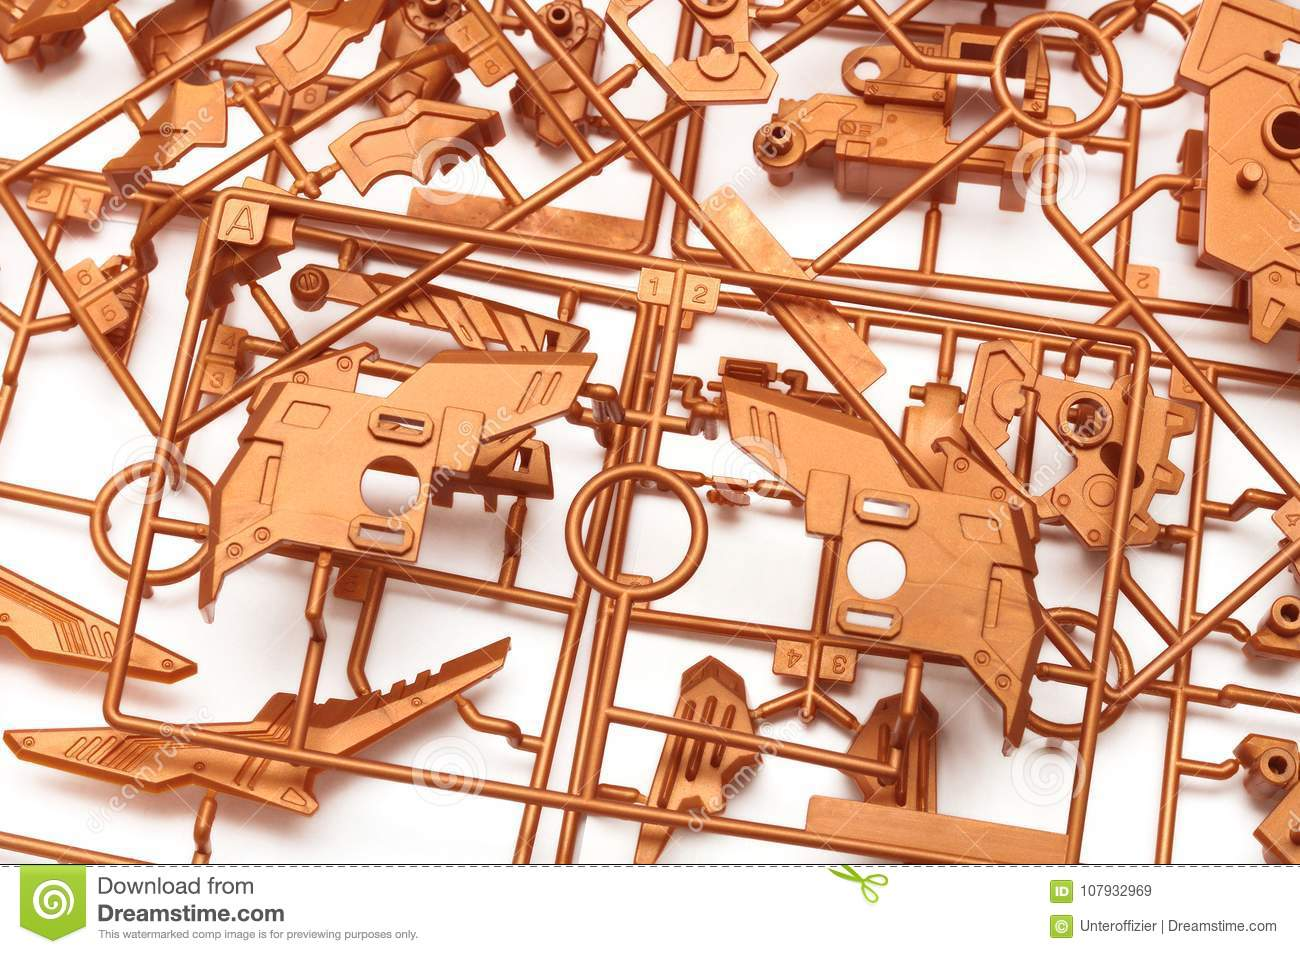 A Pile Of Metallic Orange Plastic Scale Model Kit Set With